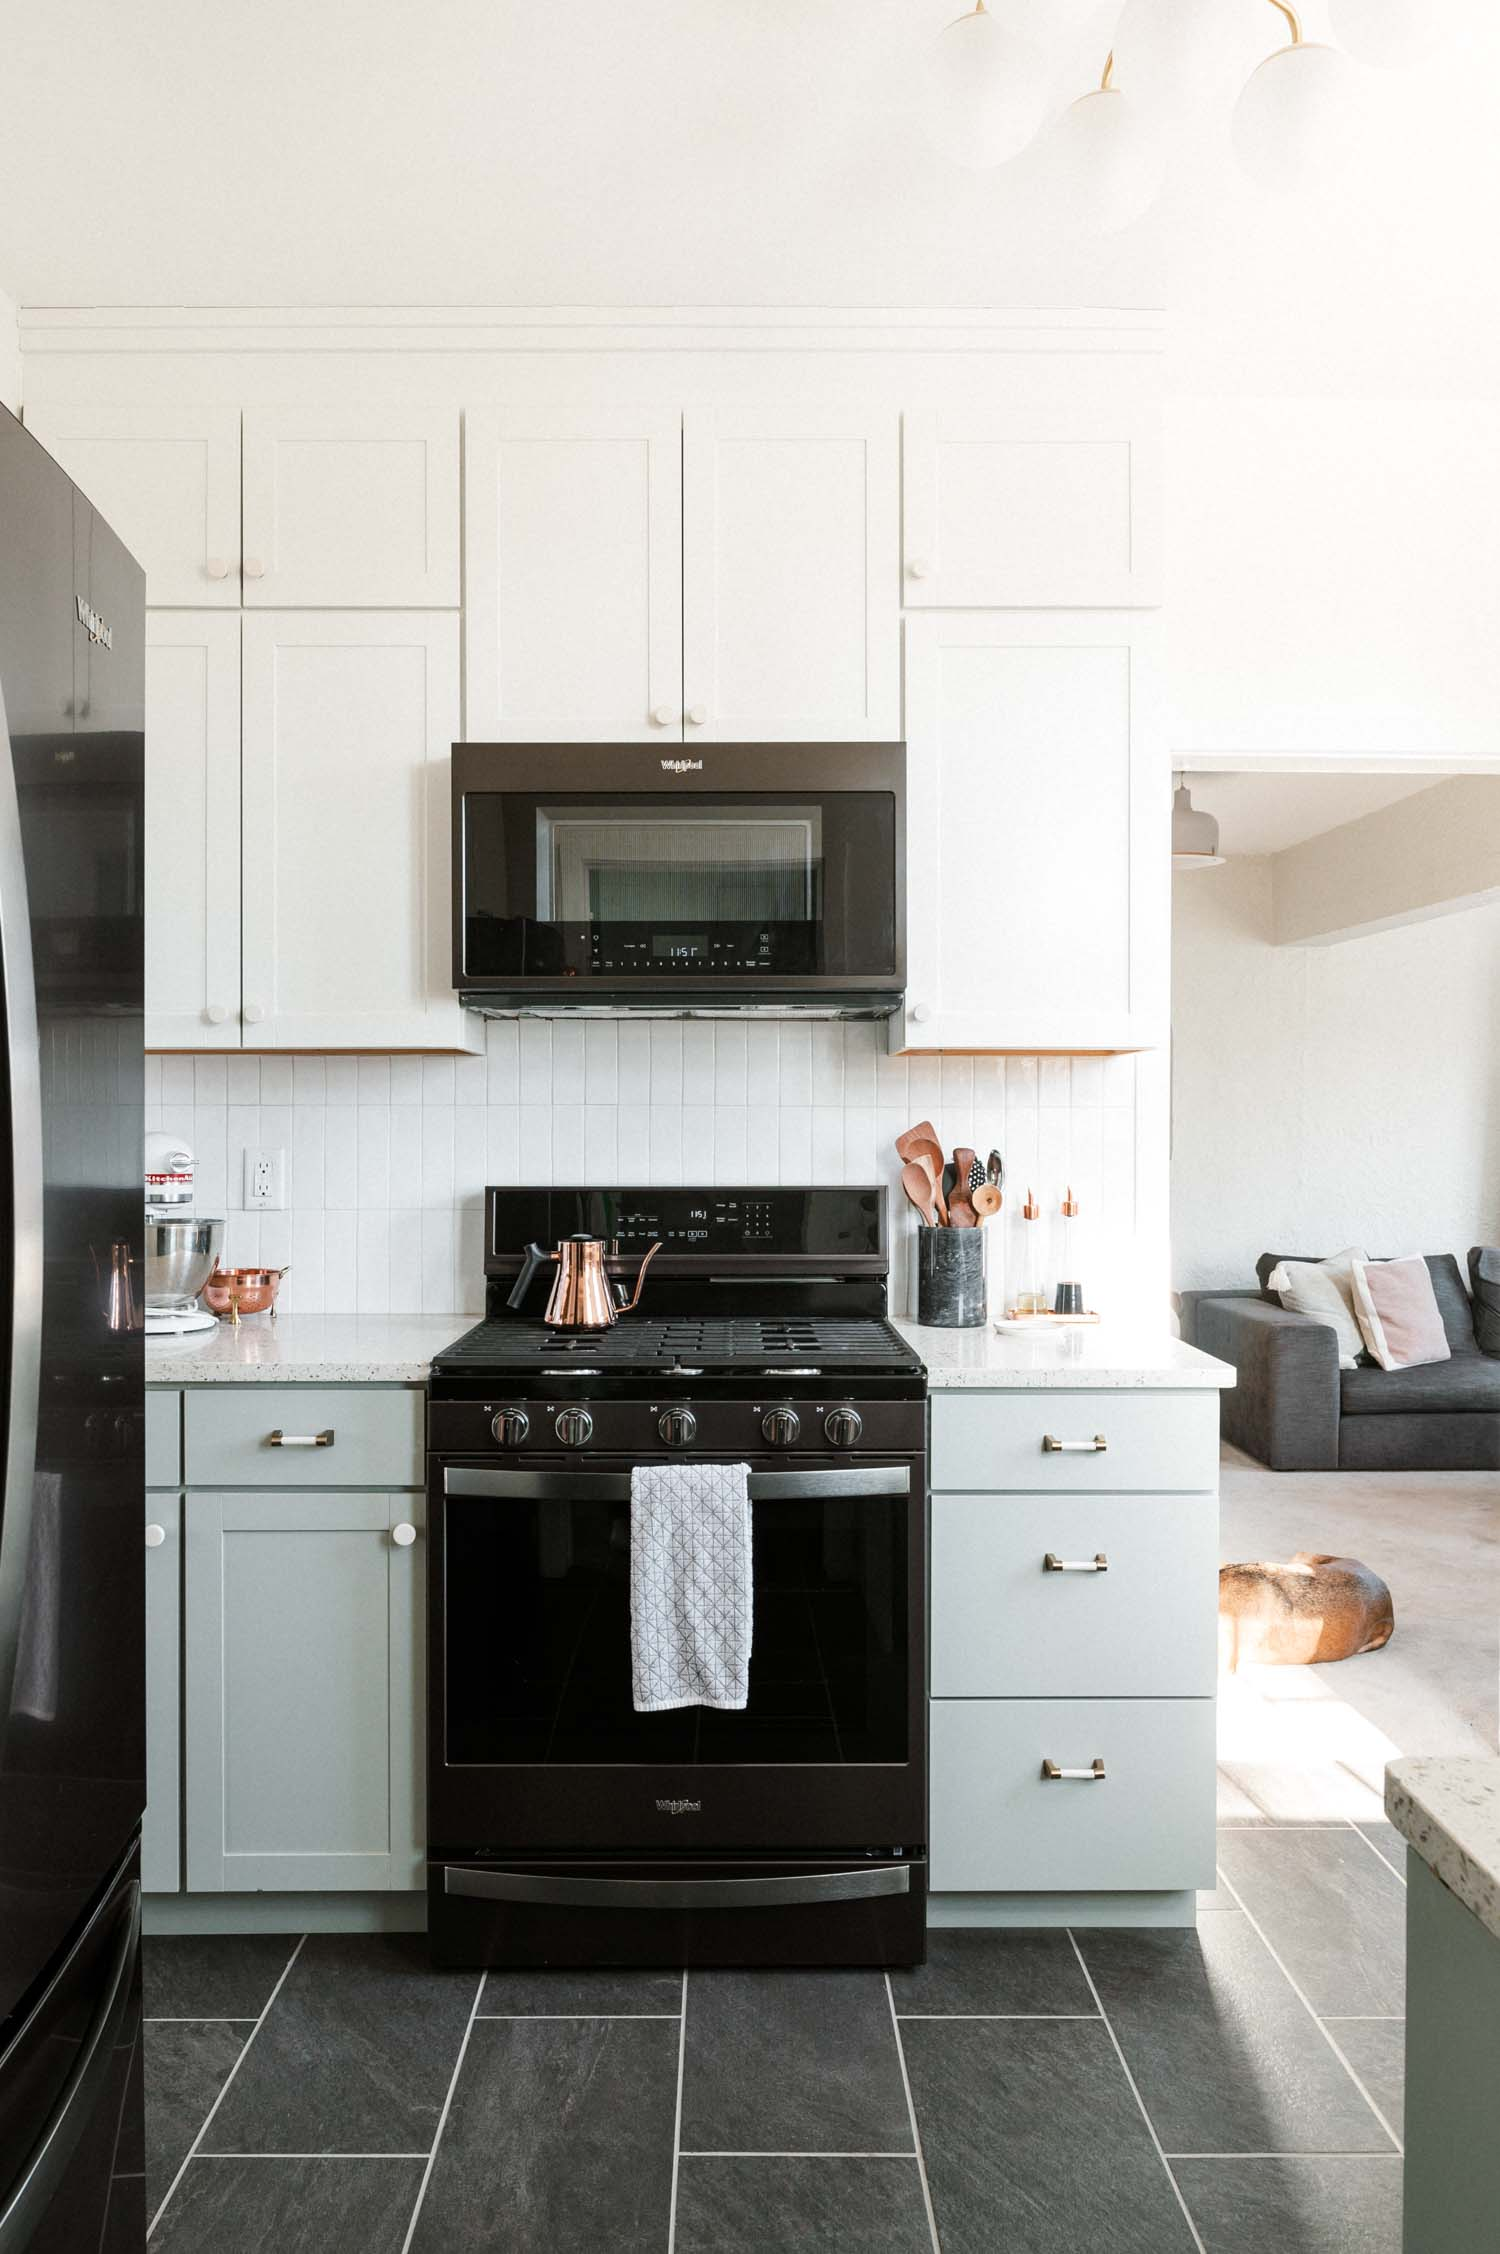 A Kitchen Designed to Make Style and Savings Work Together | Design*Sponge